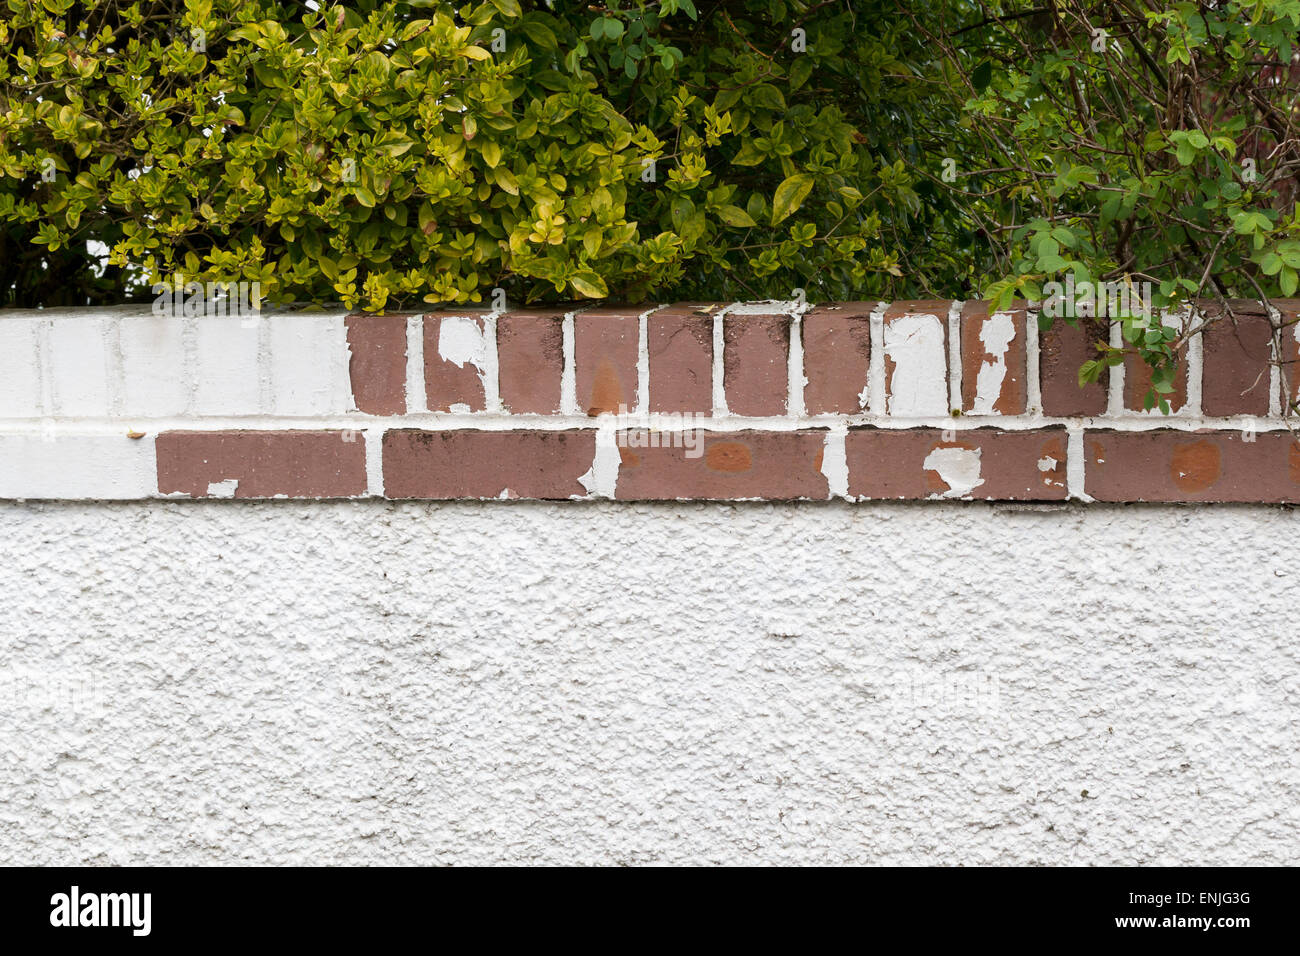 frost and weather damage to painted garden boundary wall - showing peeling paint and frost damage to bricks - Stock Image